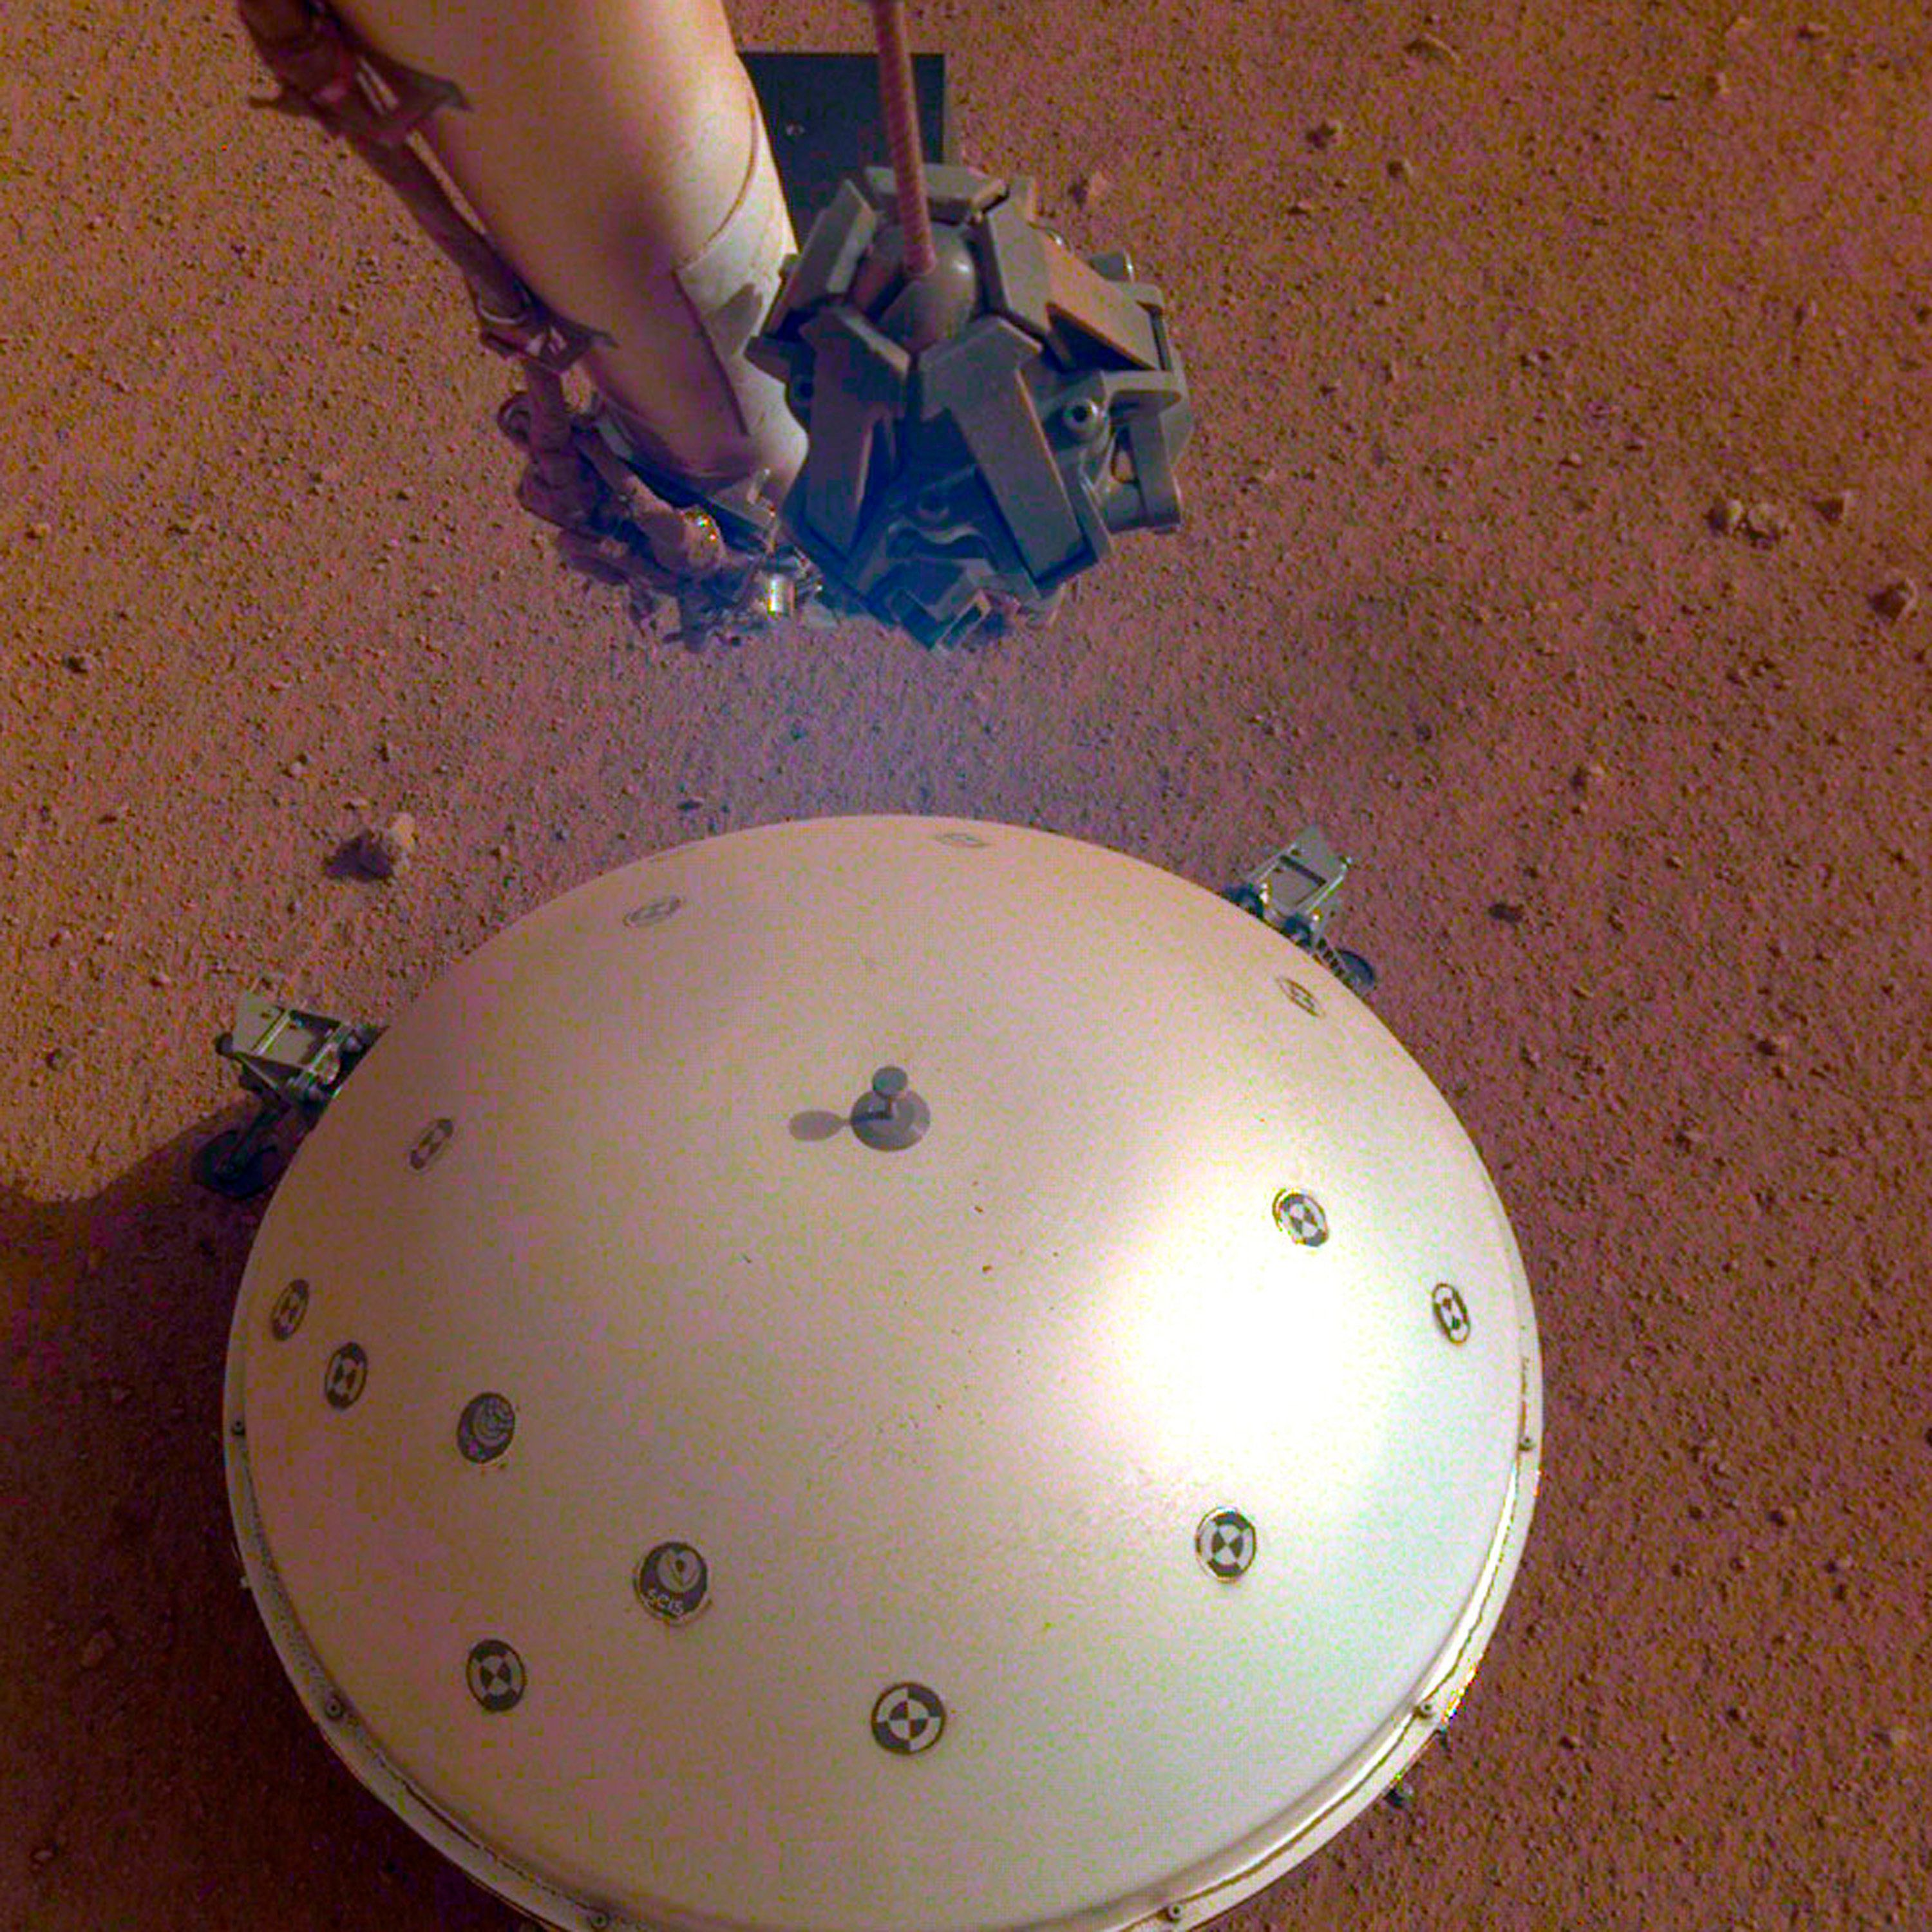 The tremorwas detected by InSight's French-built seismometer, an instrument sensitive enough to measure a seismic